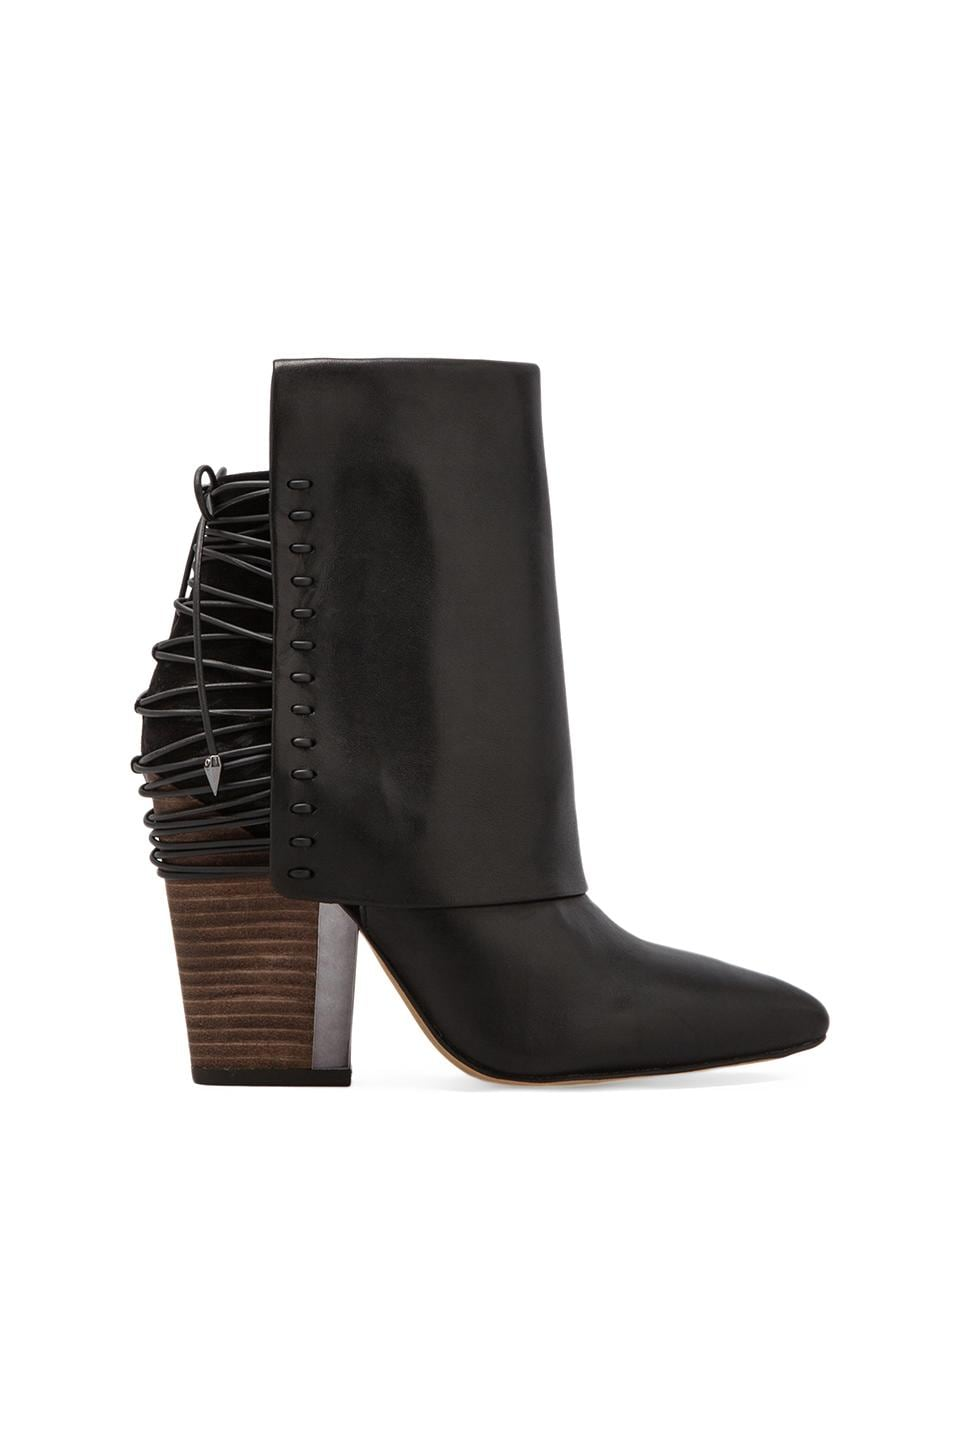 Sam Edelman Martina Bootie in Black